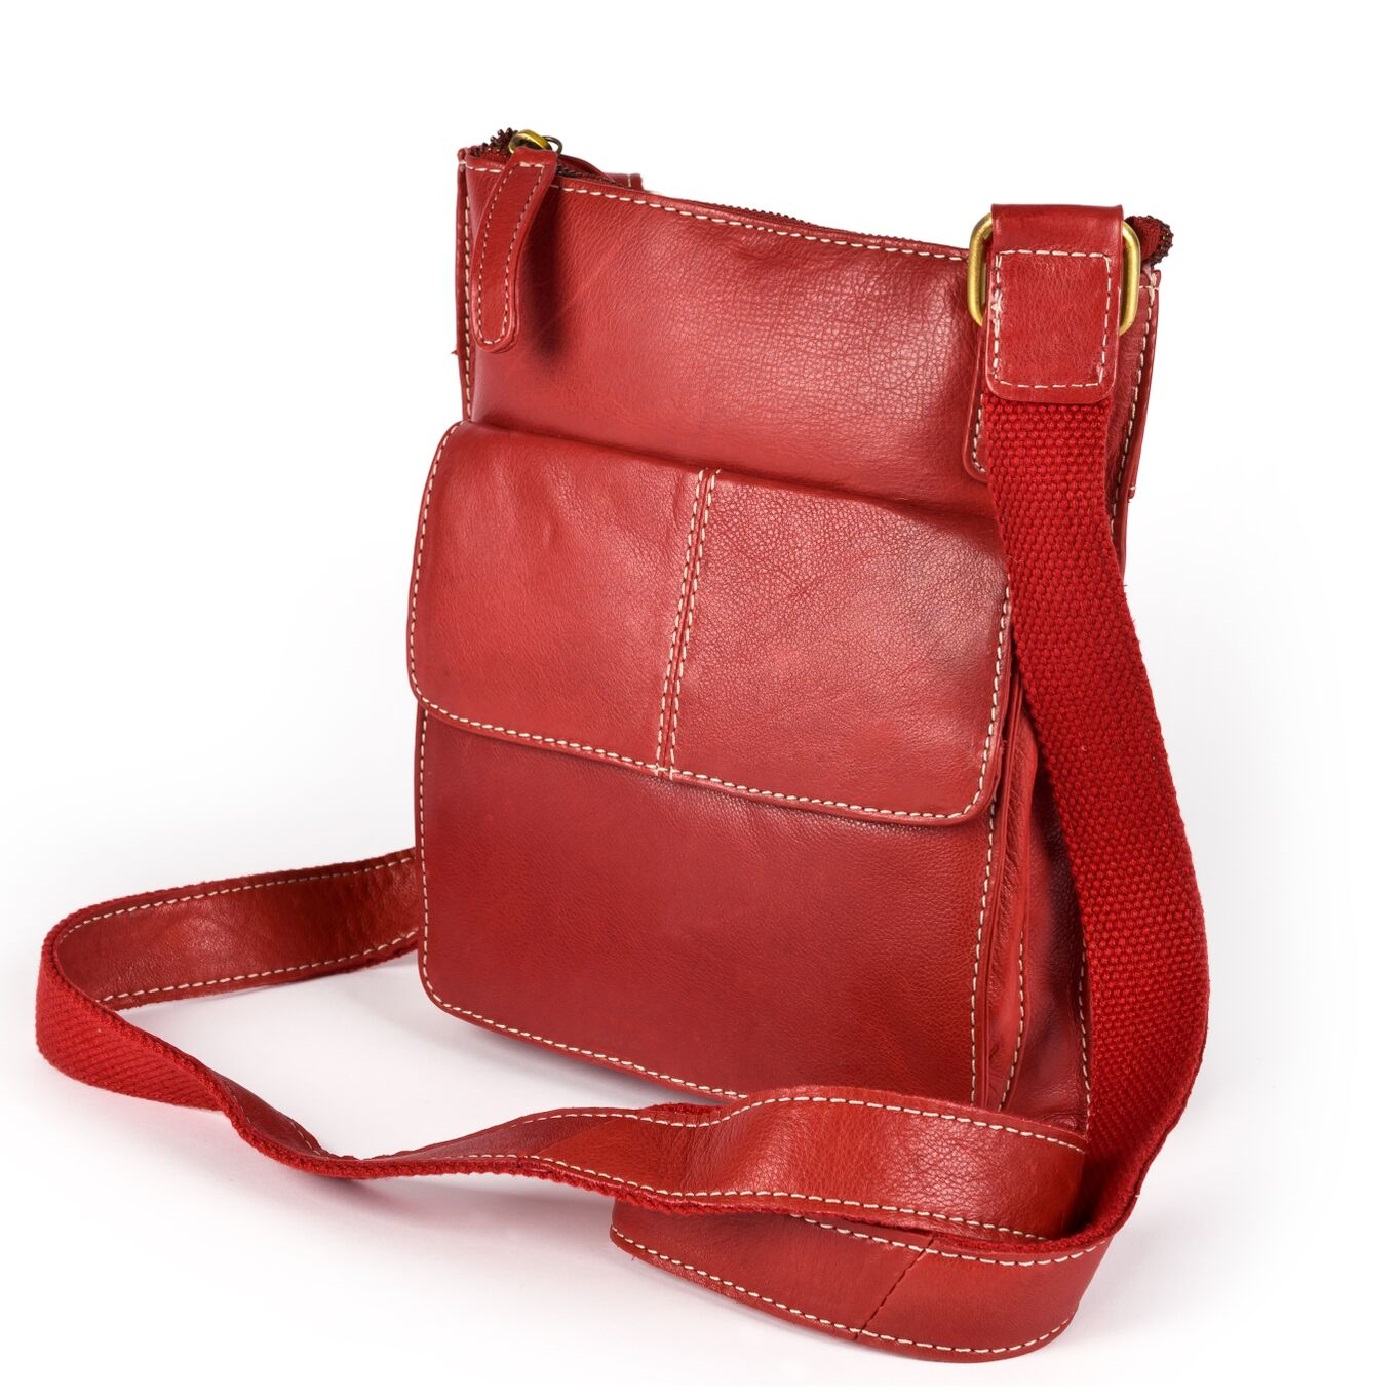 Eastern Counties Leather Womens/Ladies Claire Front Pocket Handbag (One size) (Red)